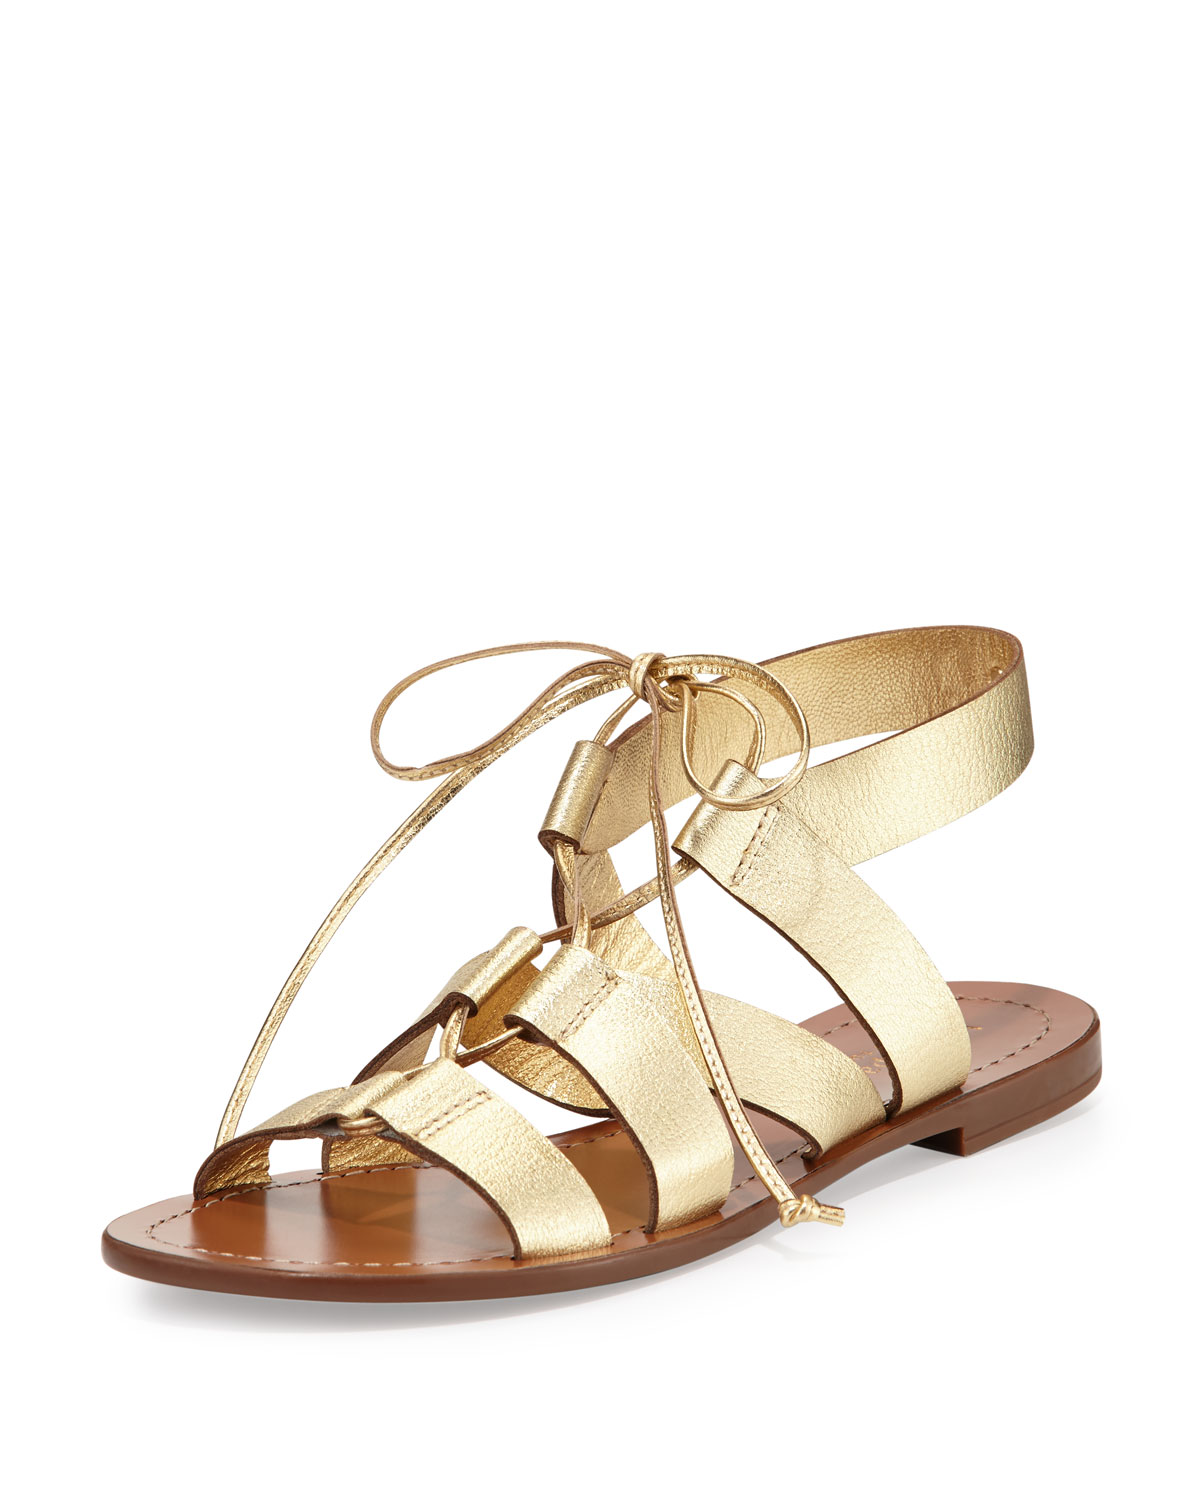 buy cheap for nice sale outlet Kate Spade New York Embroidered Lace-Up Sandals cheap perfect sale with mastercard pF521